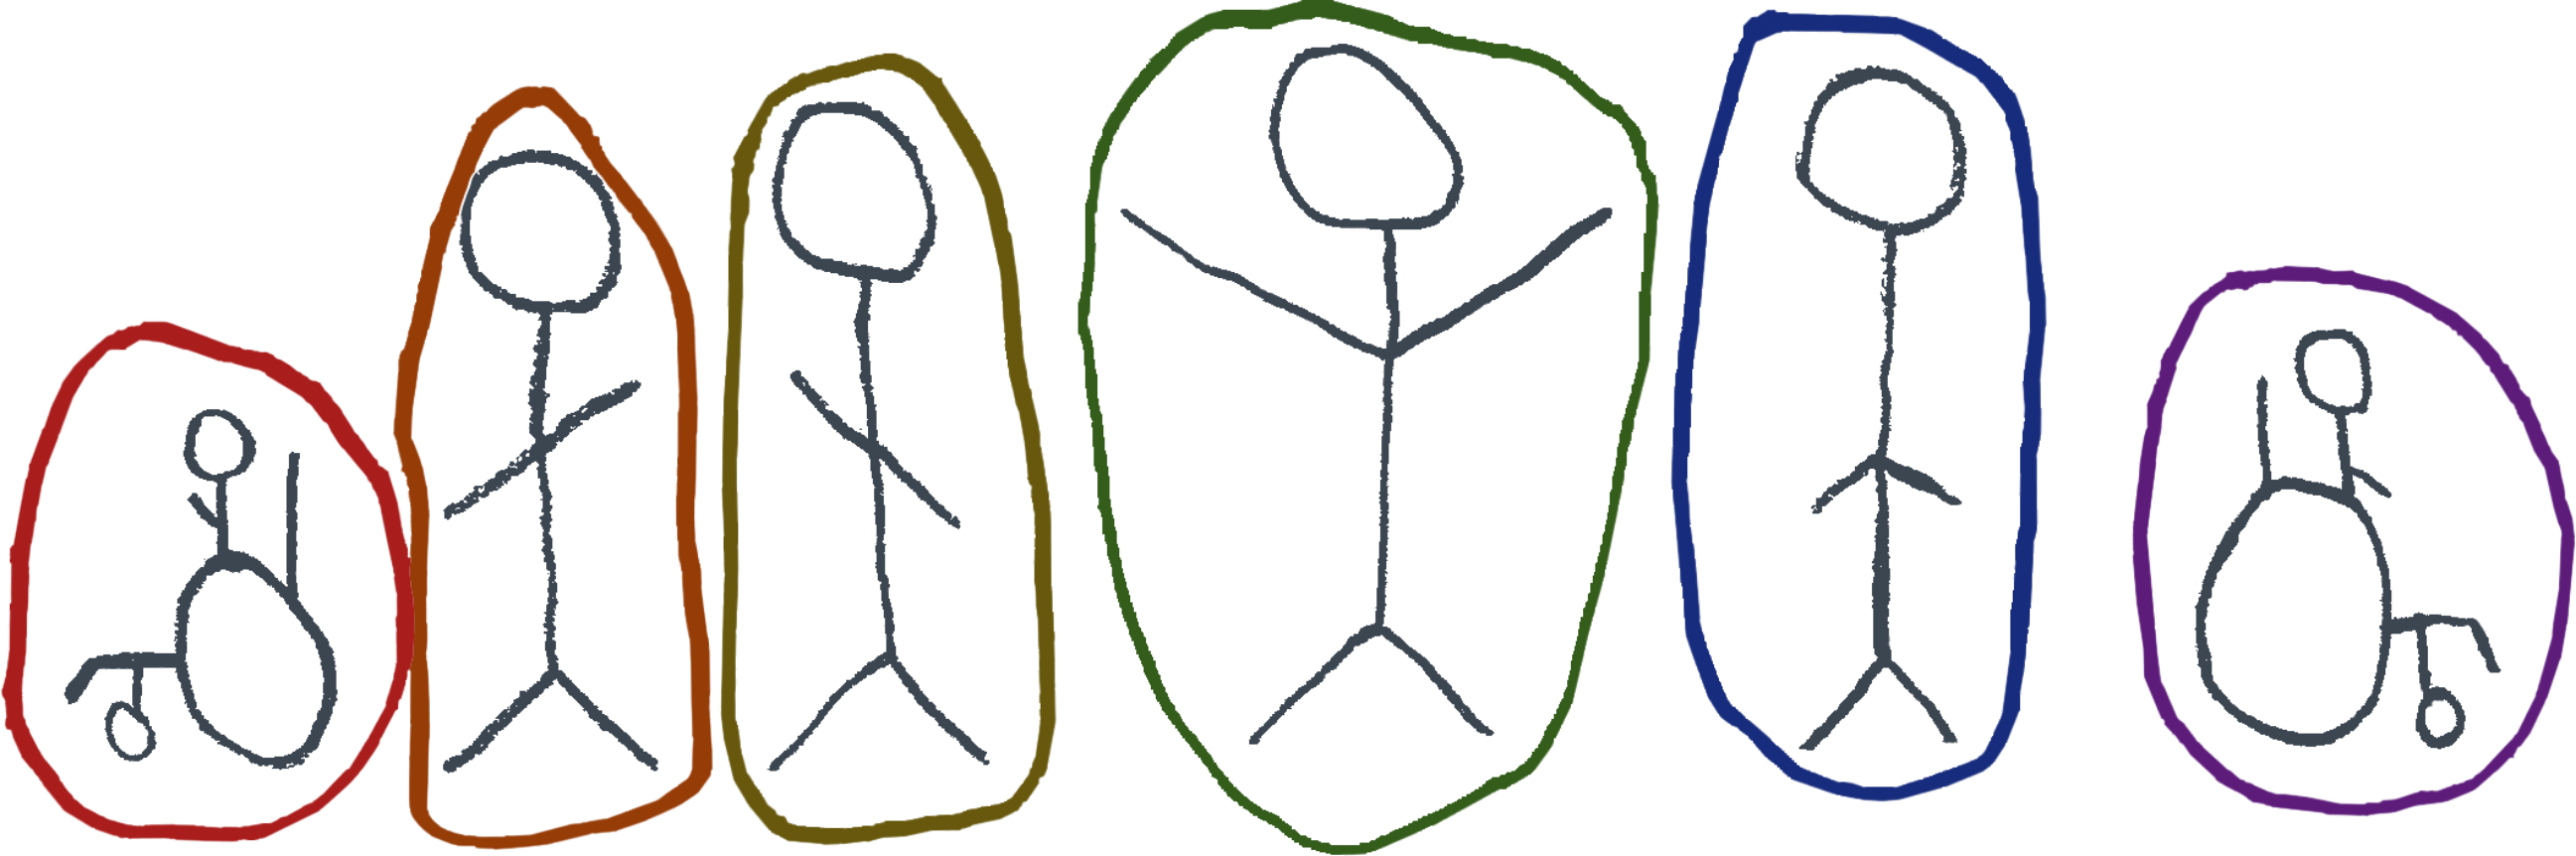 Illustration of people